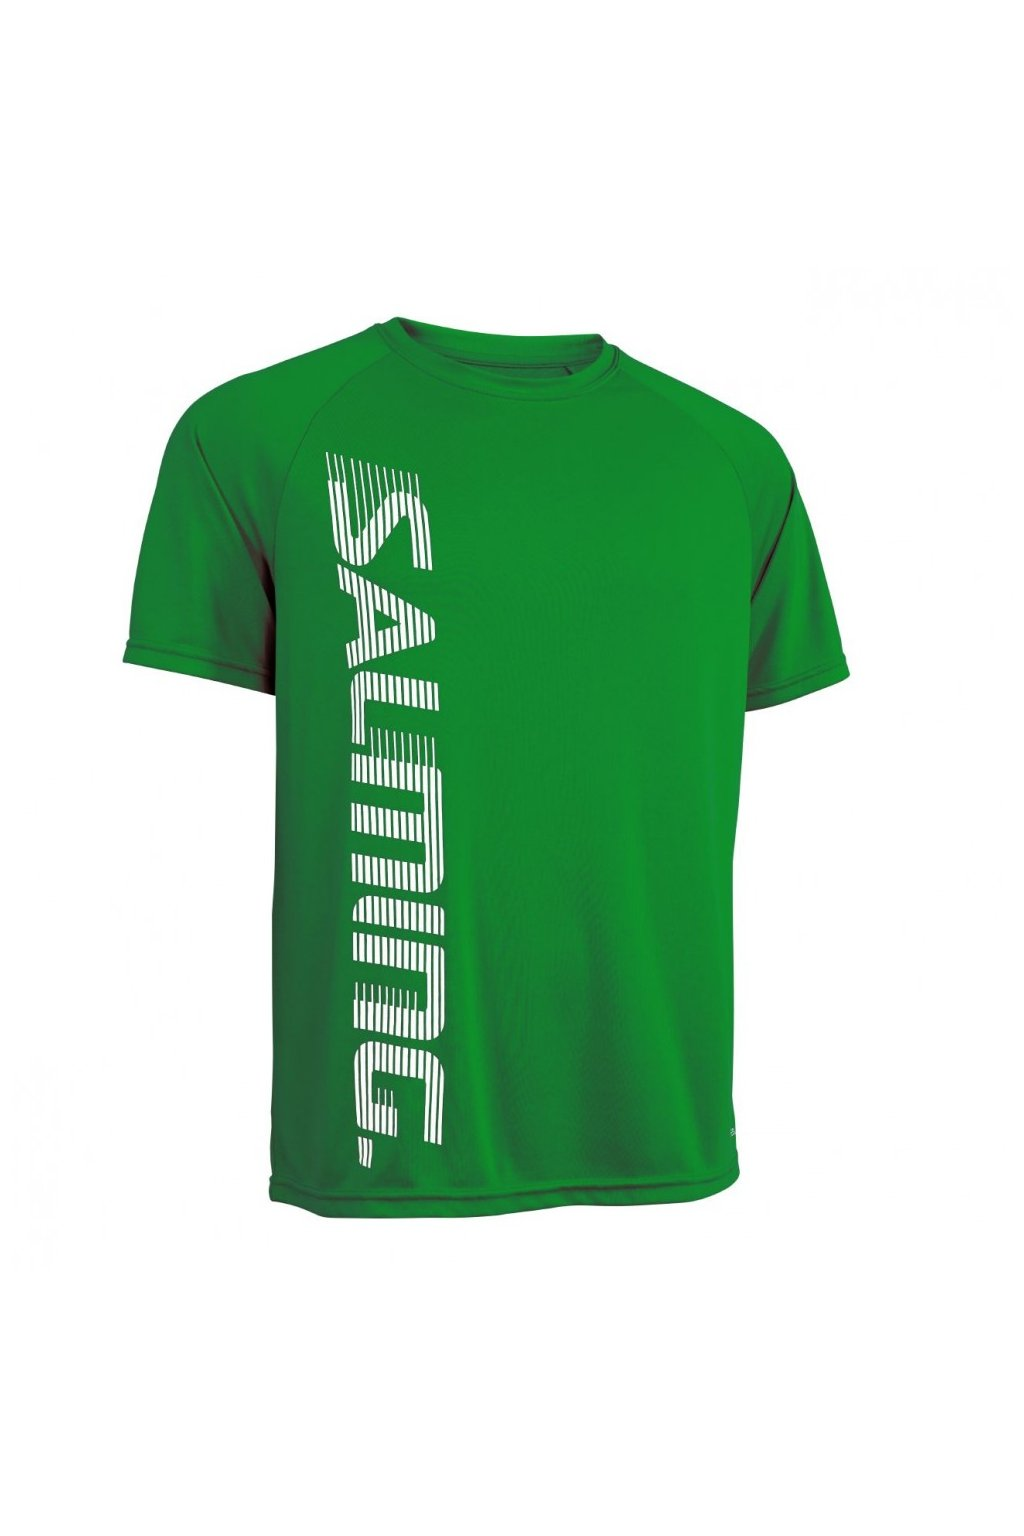 salming training tee 20 (3)